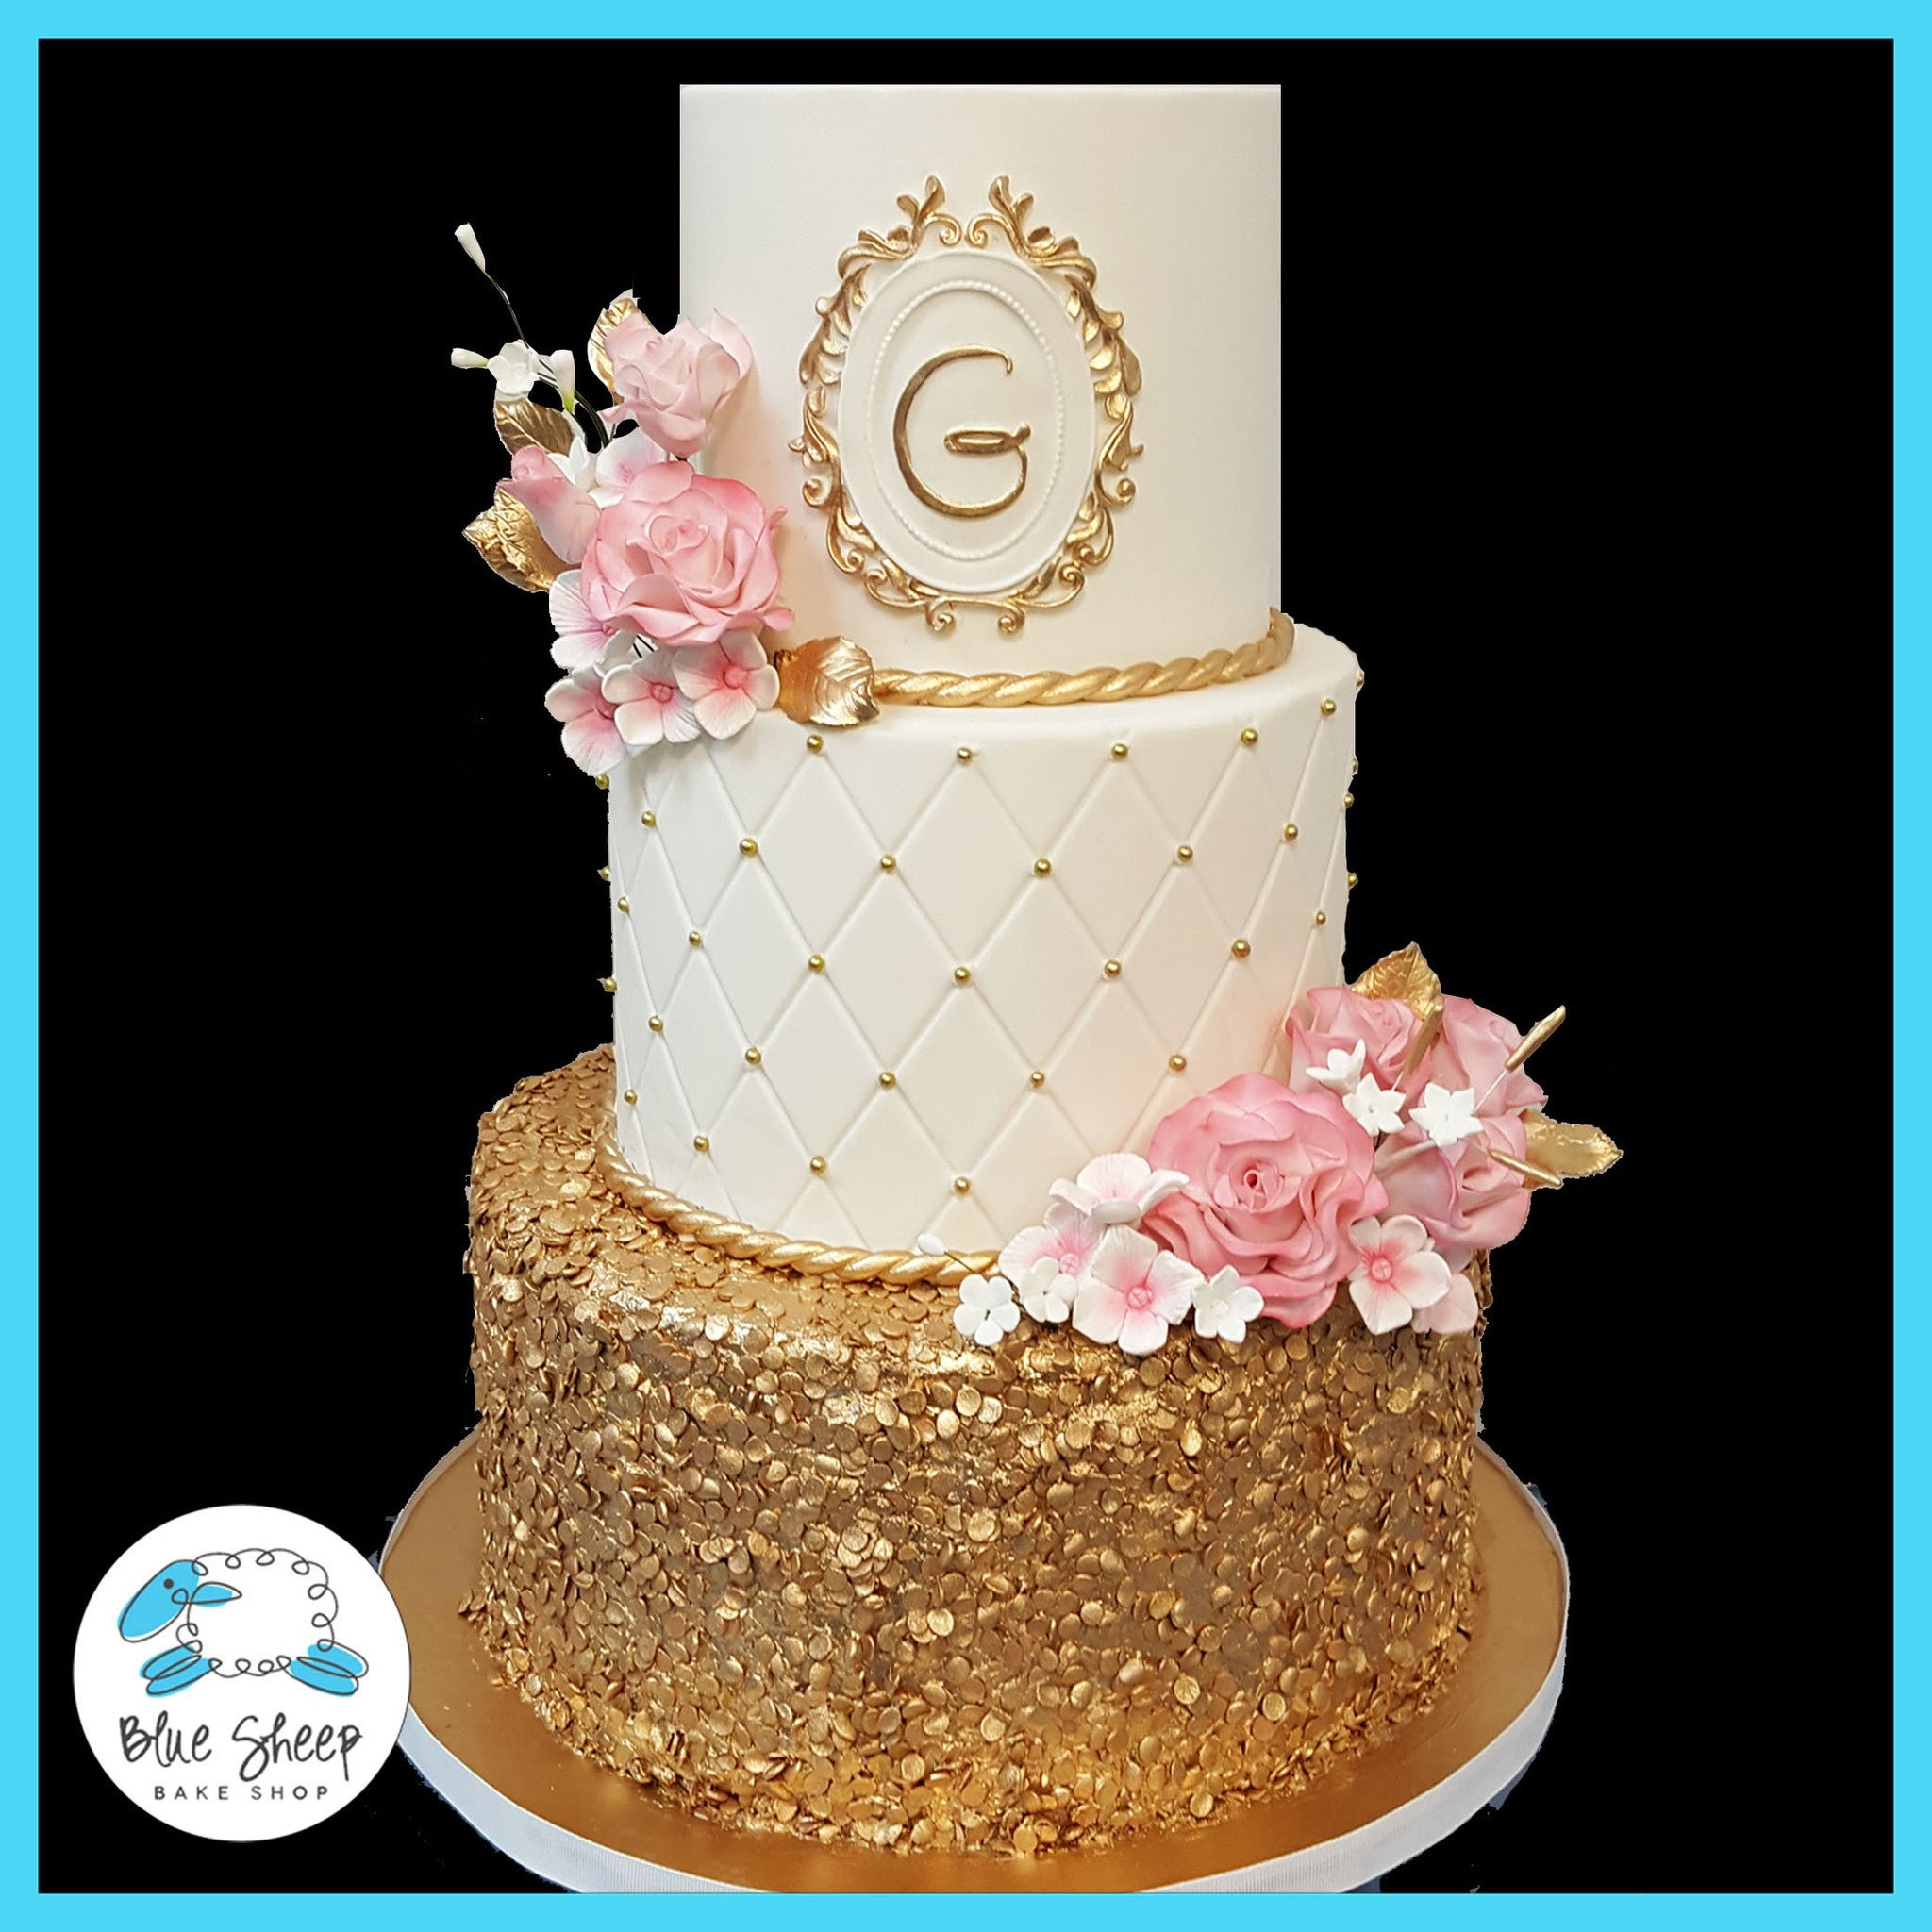 Pink and Gold Wedding Cake NJ Blue Sheep Bake Shop